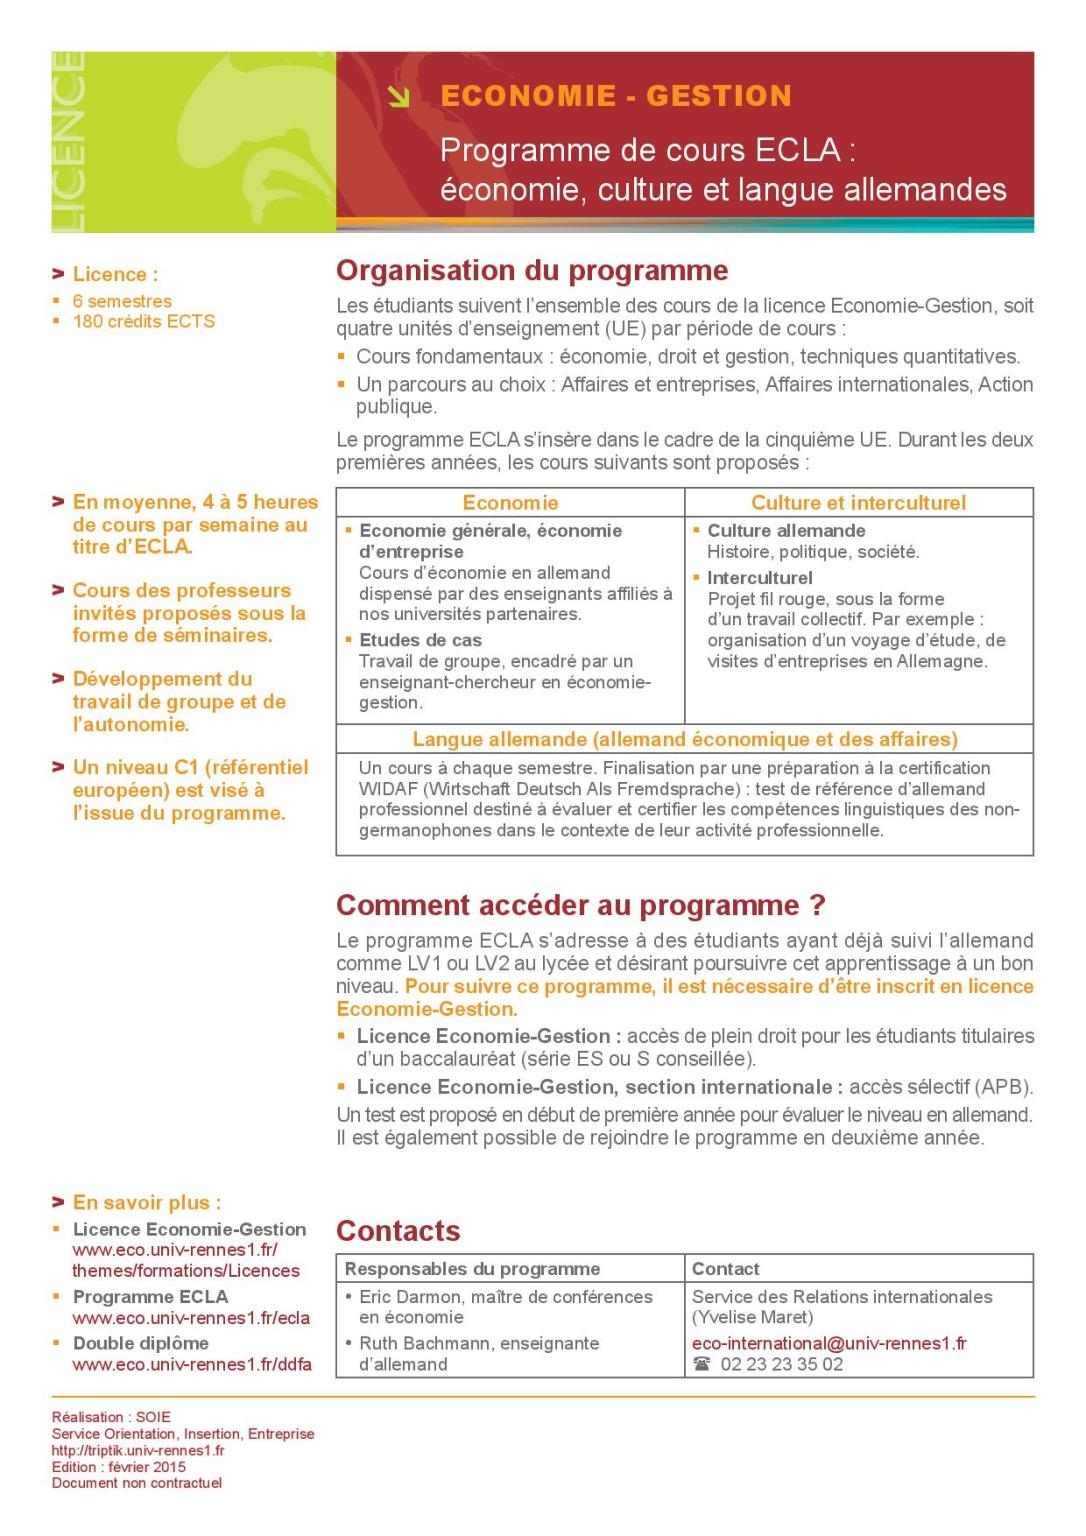 320961_fiche_licence_eco-gestion-parcours_ecla-v2-page-002